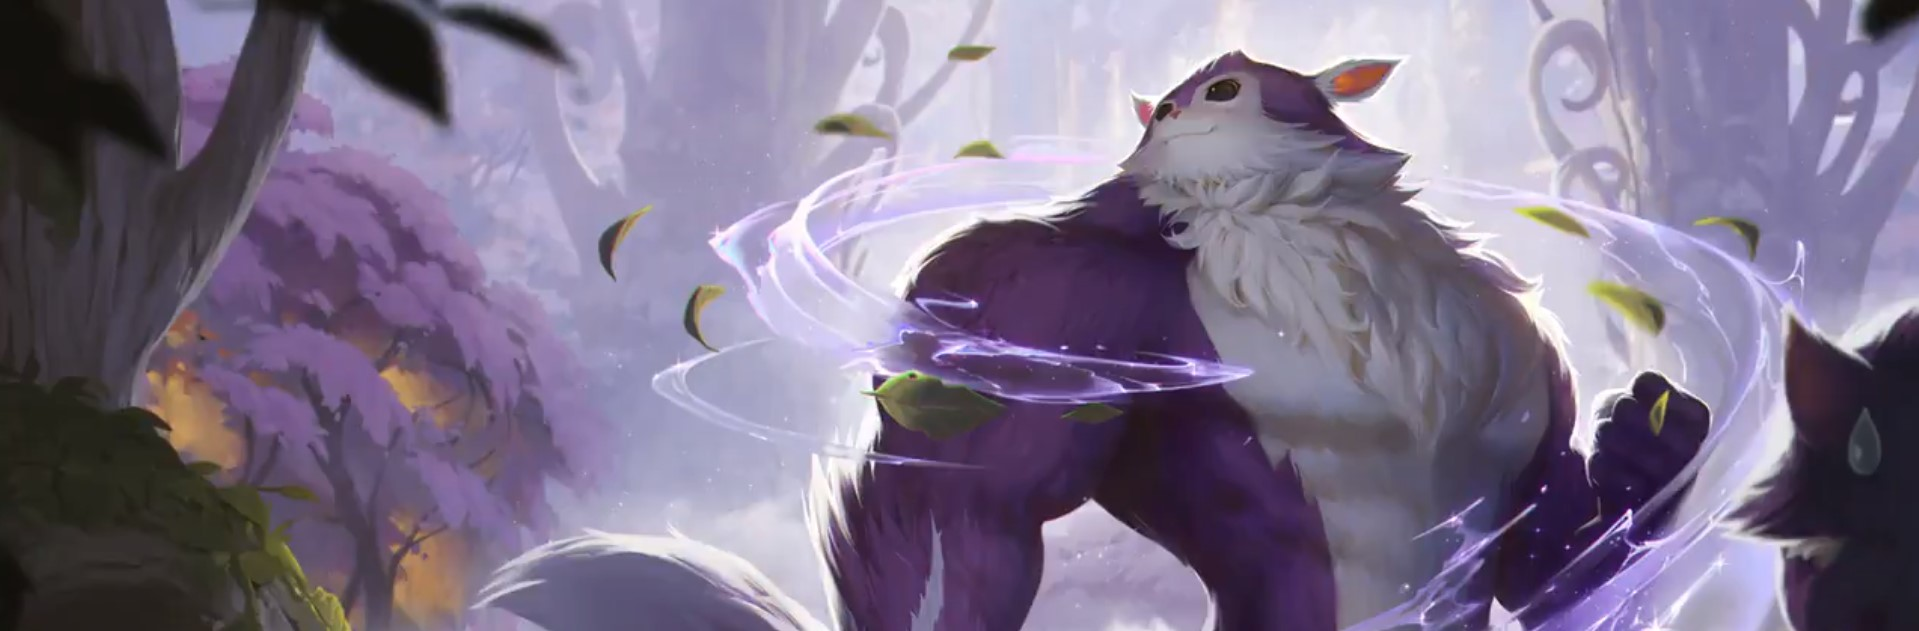 Call of the Mountain Card Spoilers: Ionia (Tasty Faefolk, Swole Squirrel, and More)